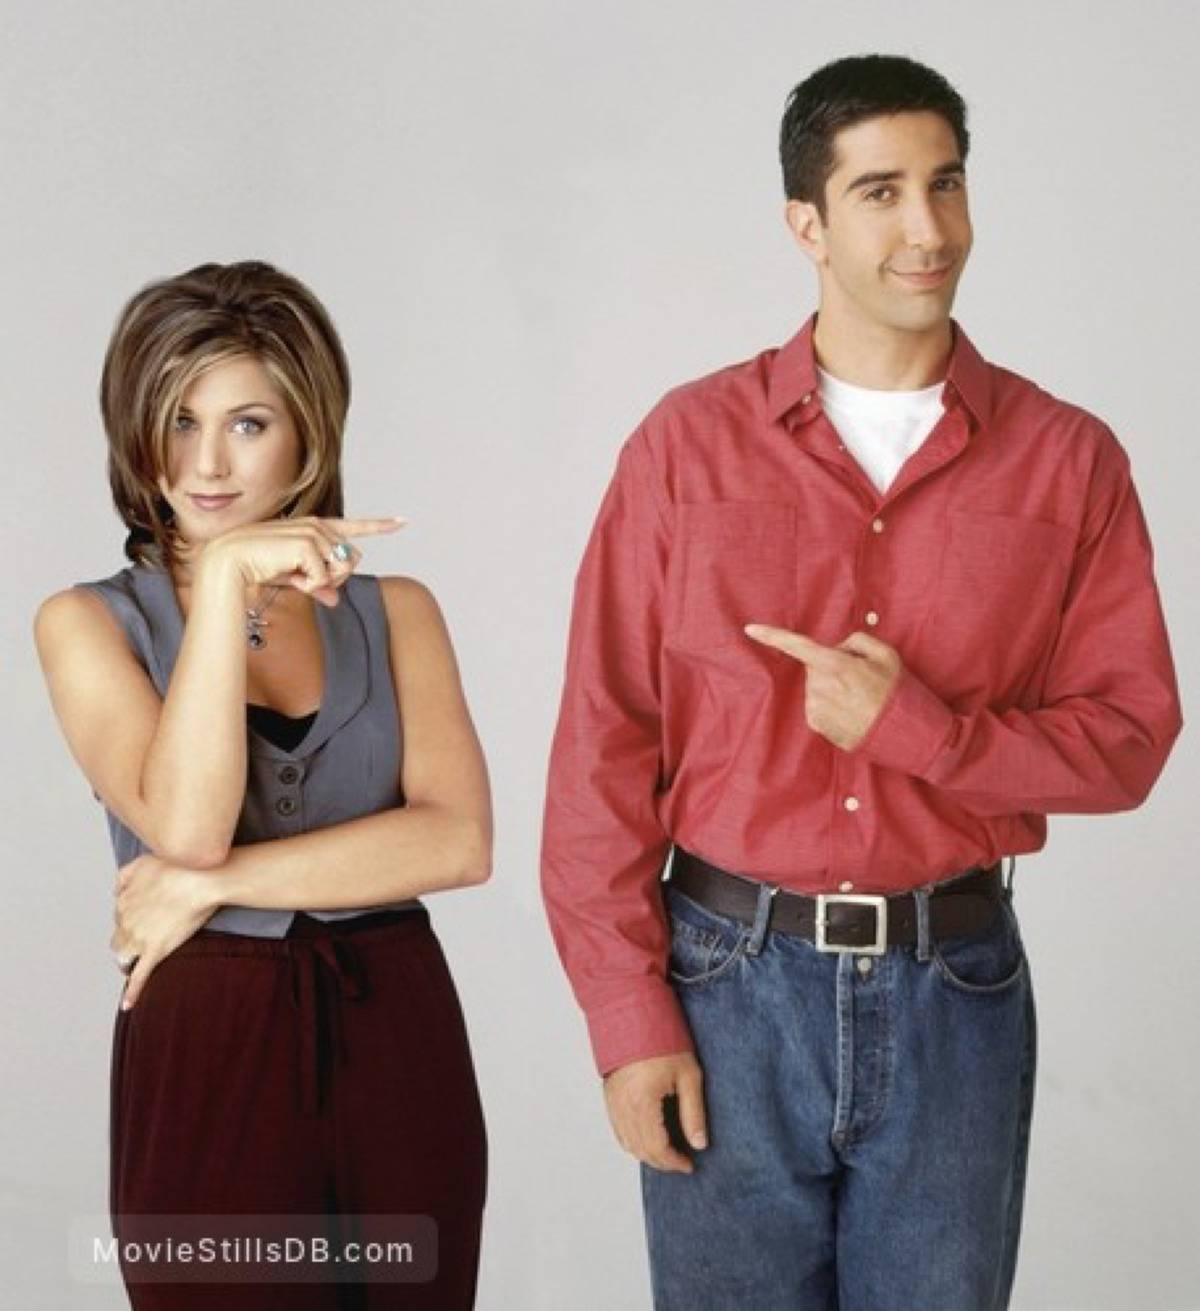 Ross and Rachel from friends pointing fingers at eachother